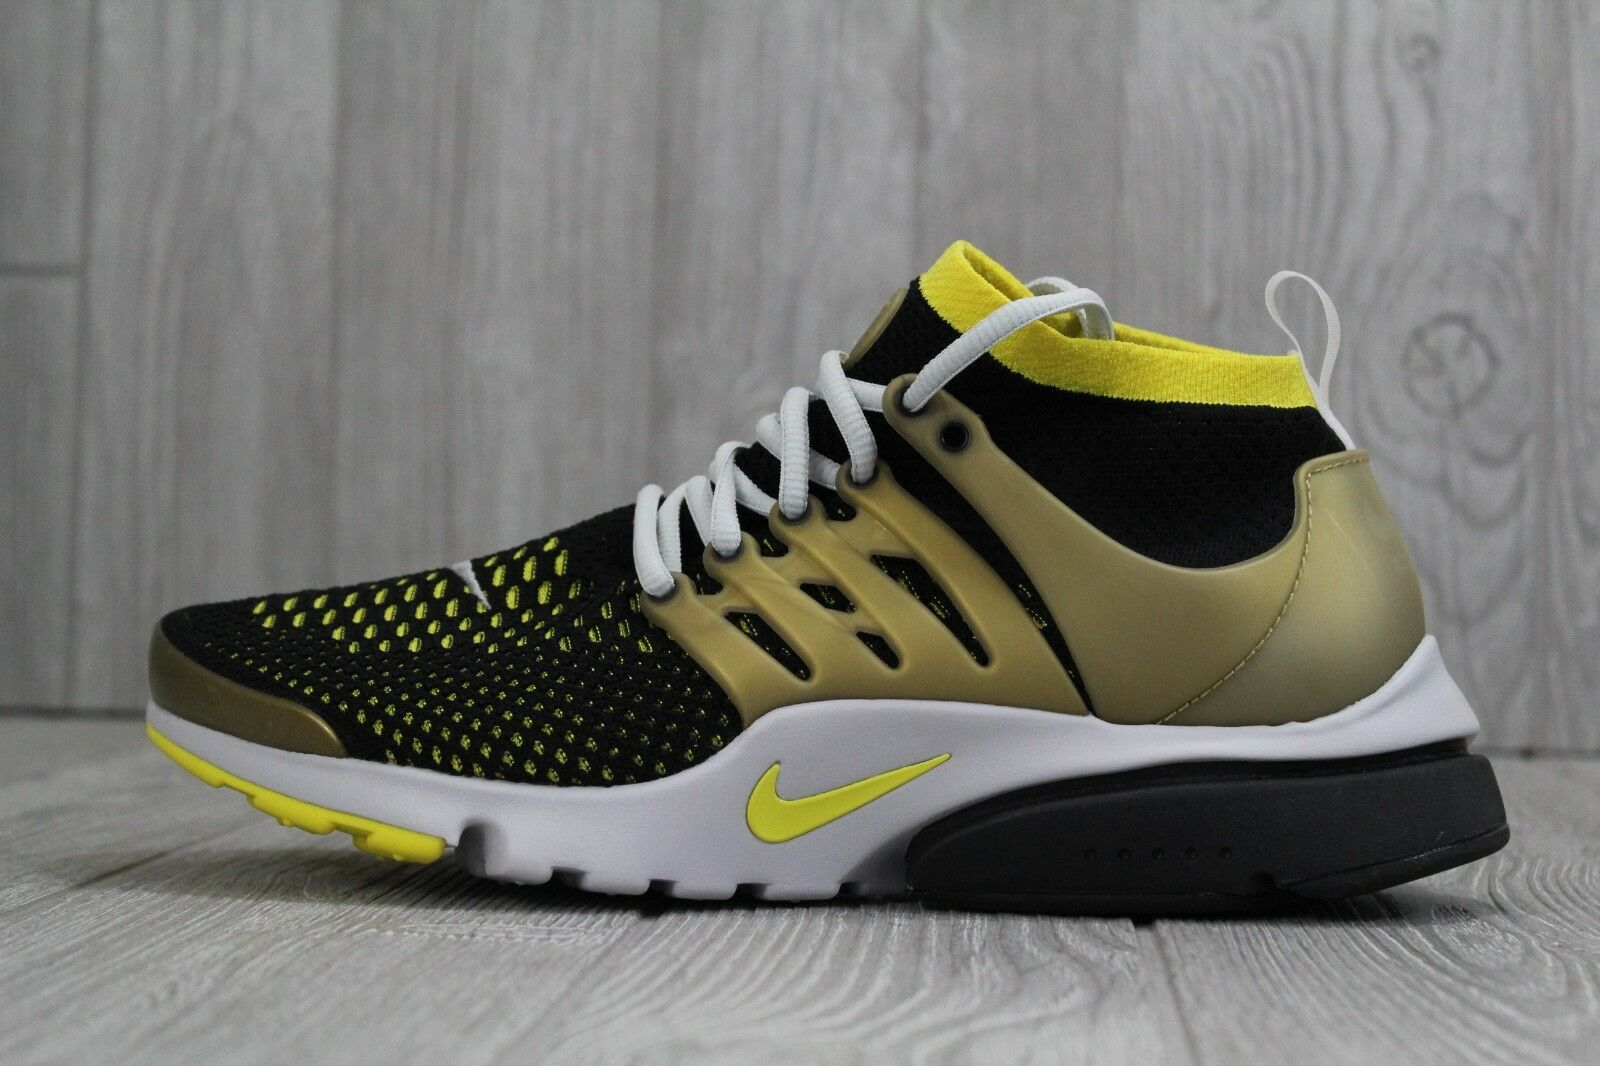 31 New Nike Air Presto Flyknit Ultra Mens Shoes Black/Gold Sz 10 835570 007